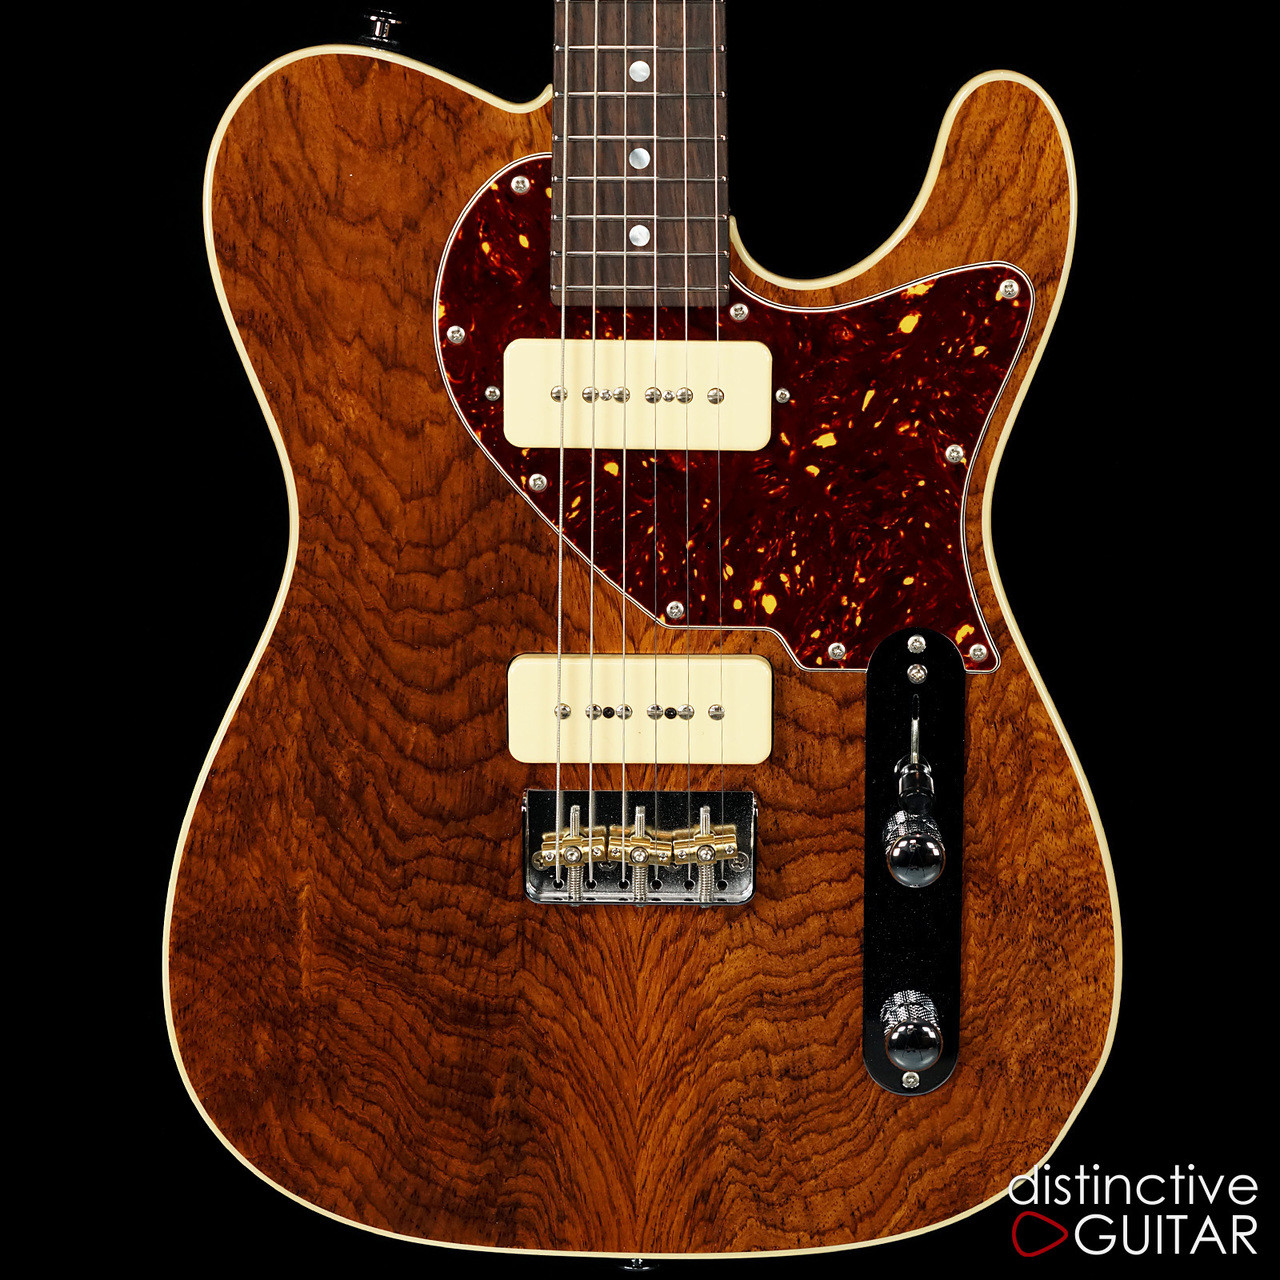 Suhr Classic T Wiring Diagram Guitar Custom Limited P90 Guatemalan Rosewood Natural Gloss Rh Distinctiveguitar Com Telecaster Middle Pickup